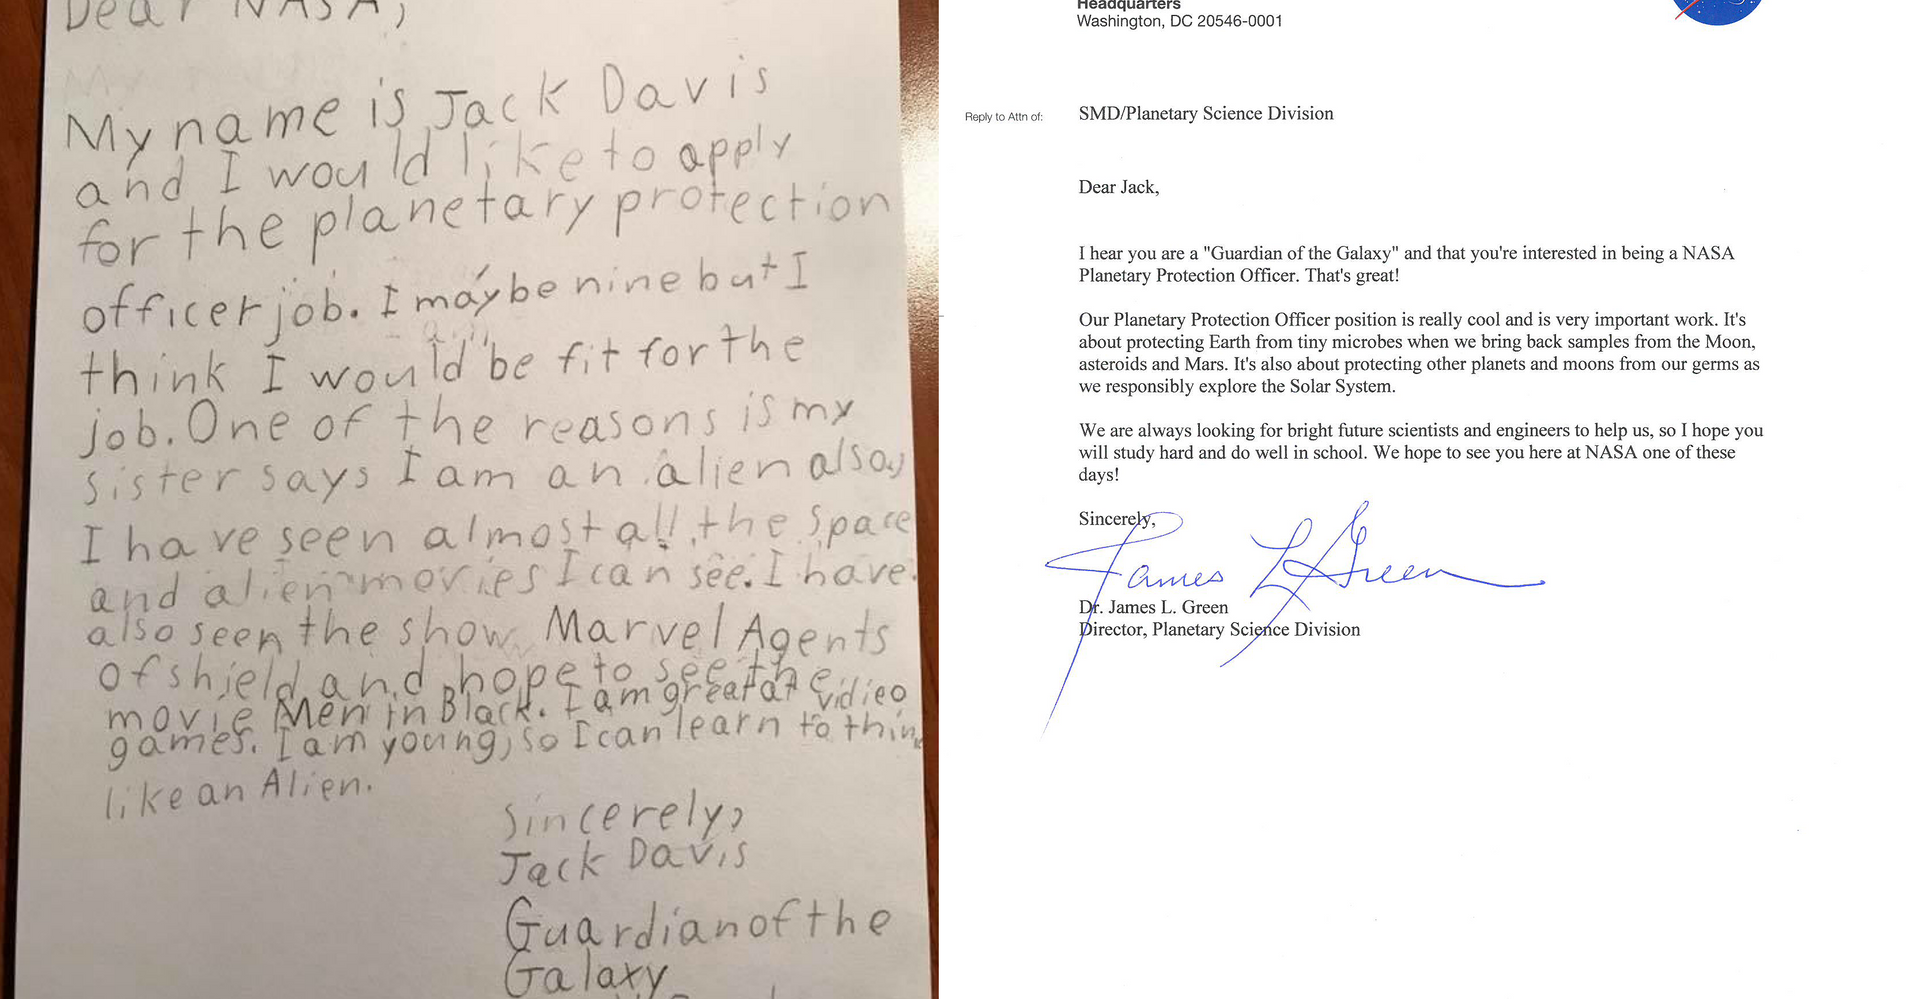 NASA Responds To 9-Year-Old Who Applied To Be A Guardian Of The Galaxy